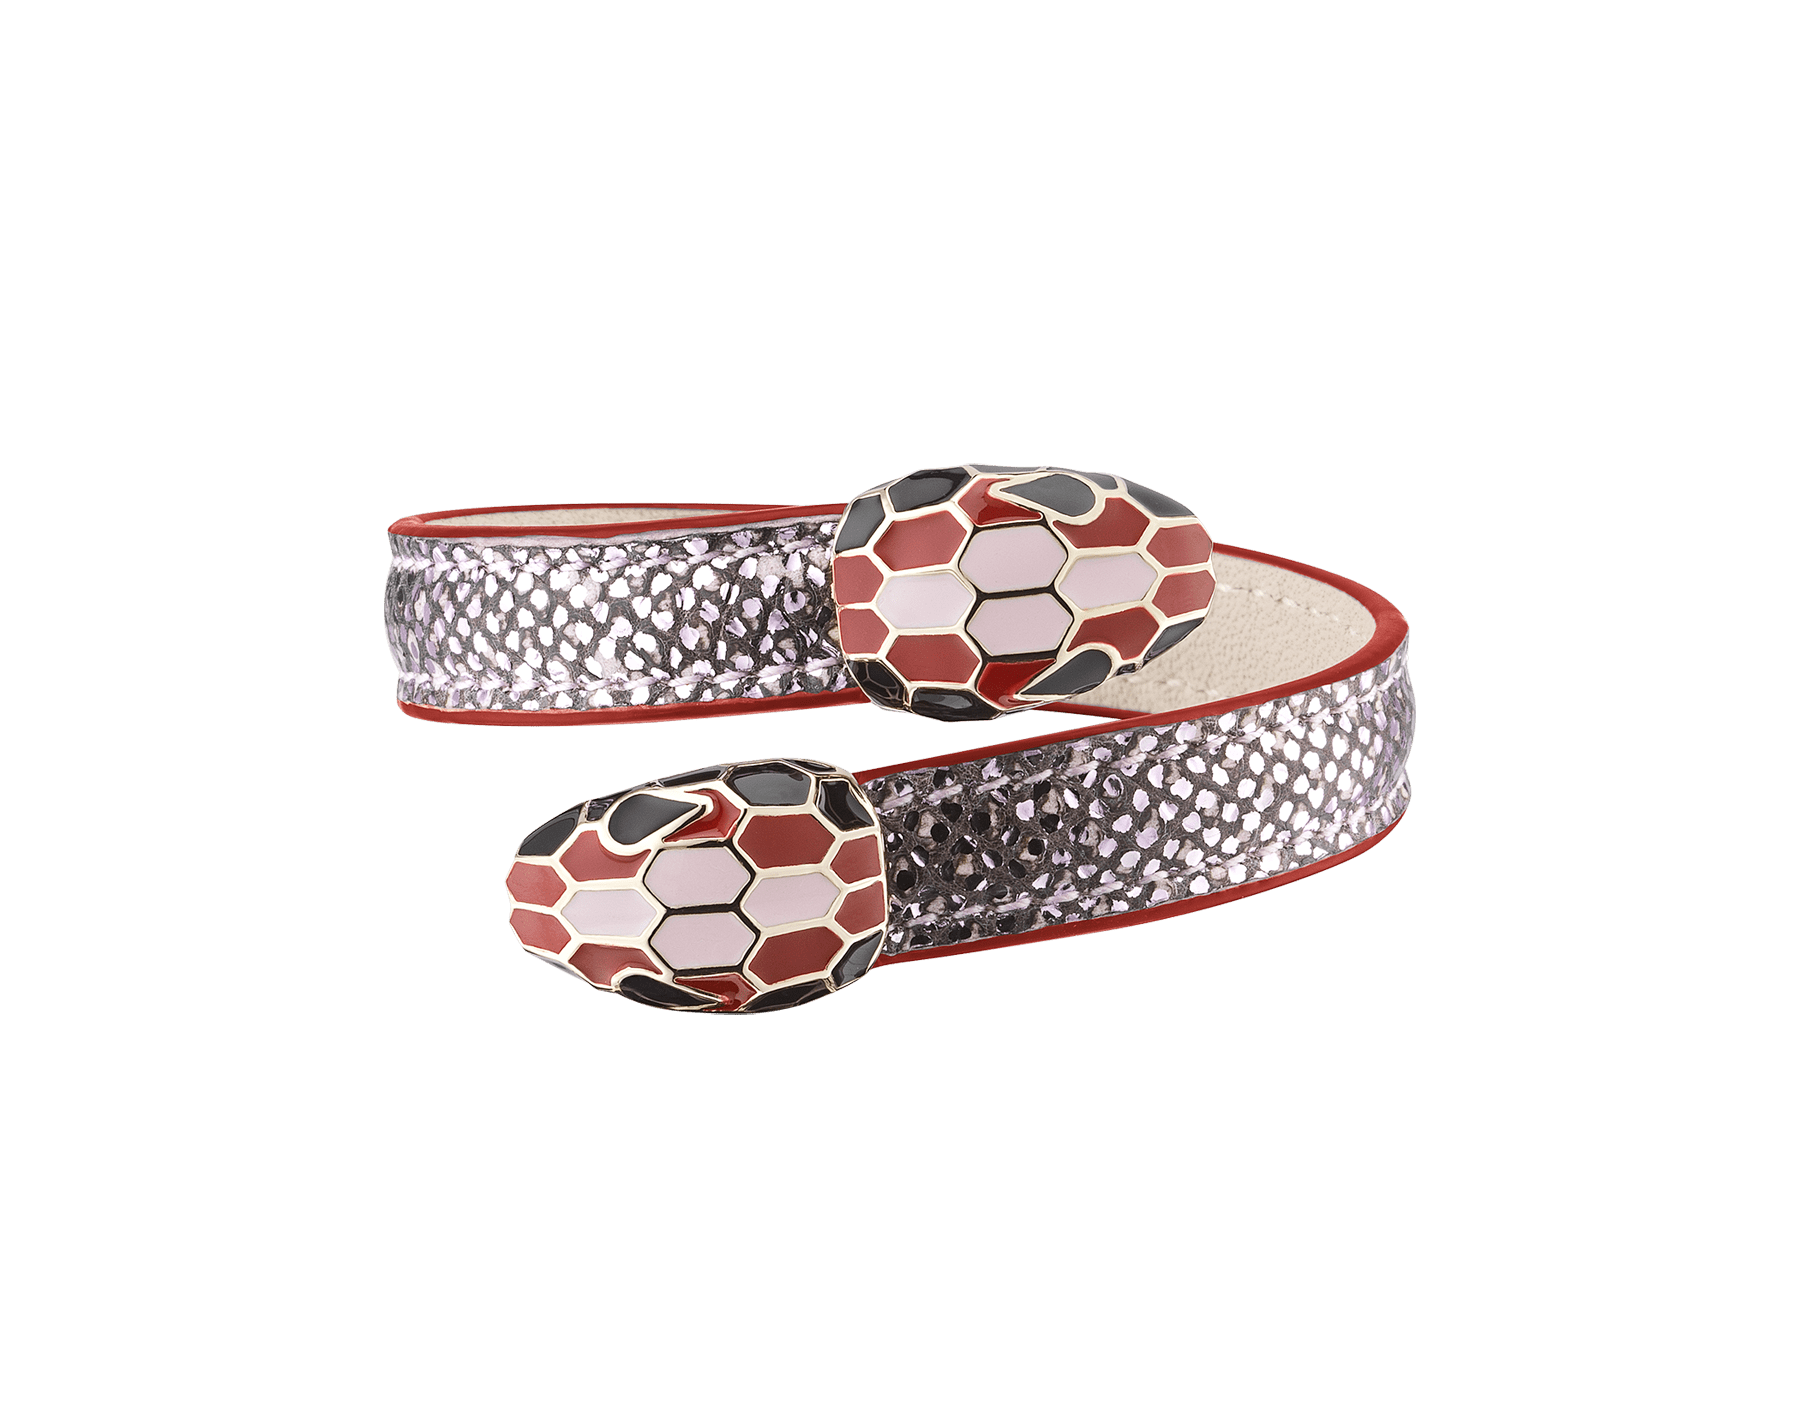 Serpenti Forever Celebration Edition soft bangle bracelet in rosa di Francia metallic karung skin, with light gold plated brass hardware. Contraire double snakehead décor with black, carmine jasper and rosa di Francia enamel, and black enamel eyes. 289546 image 1